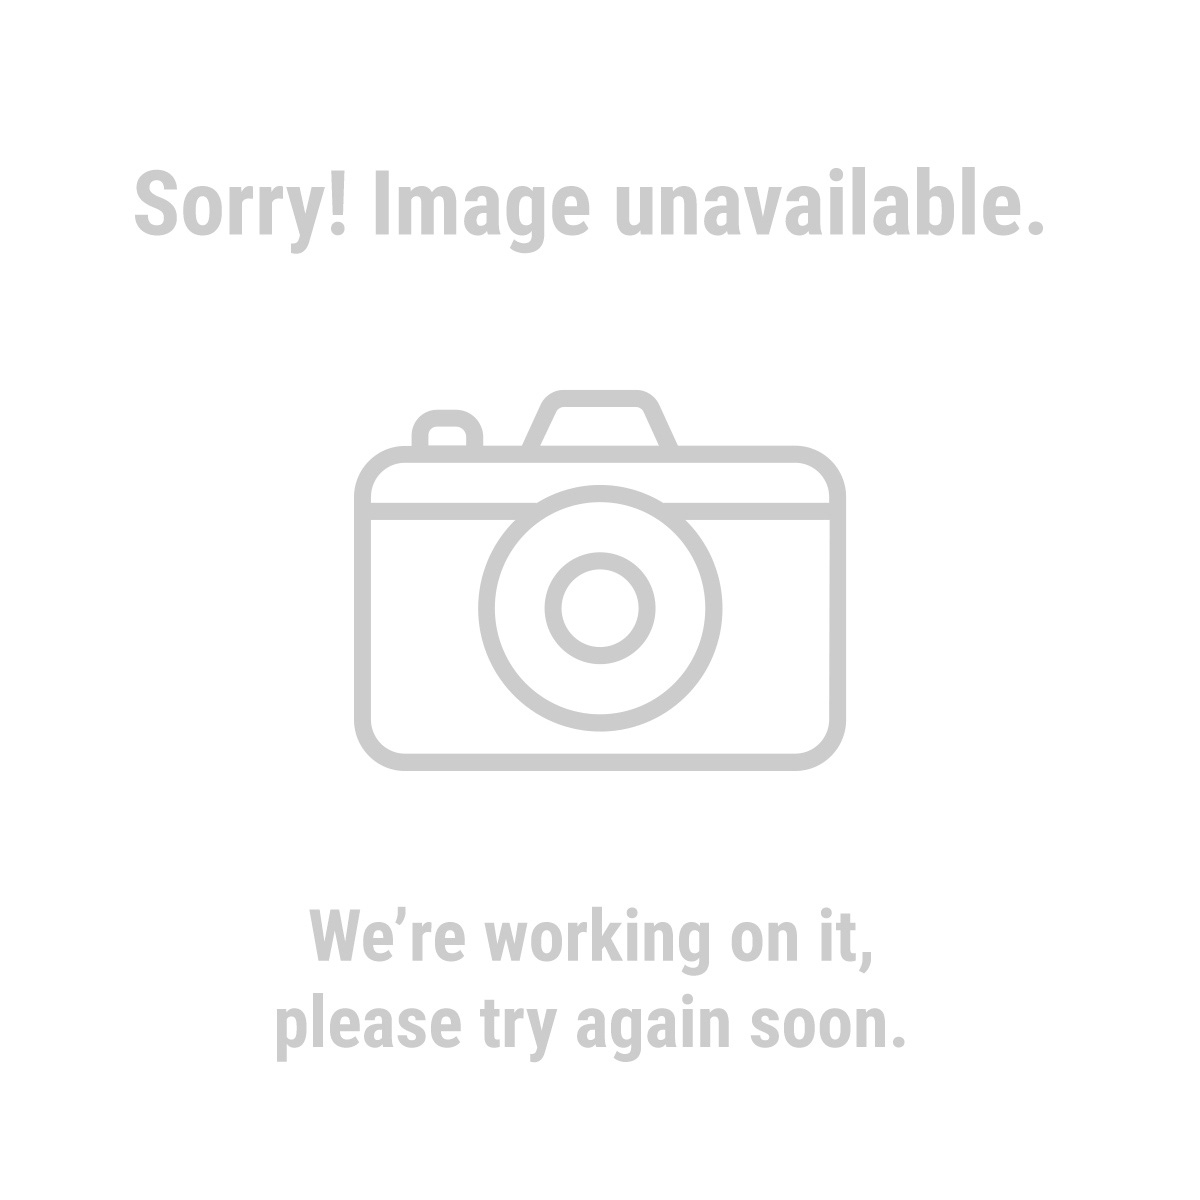 Central Pneumatic 68097 32 fl. oz. Compressor Oil